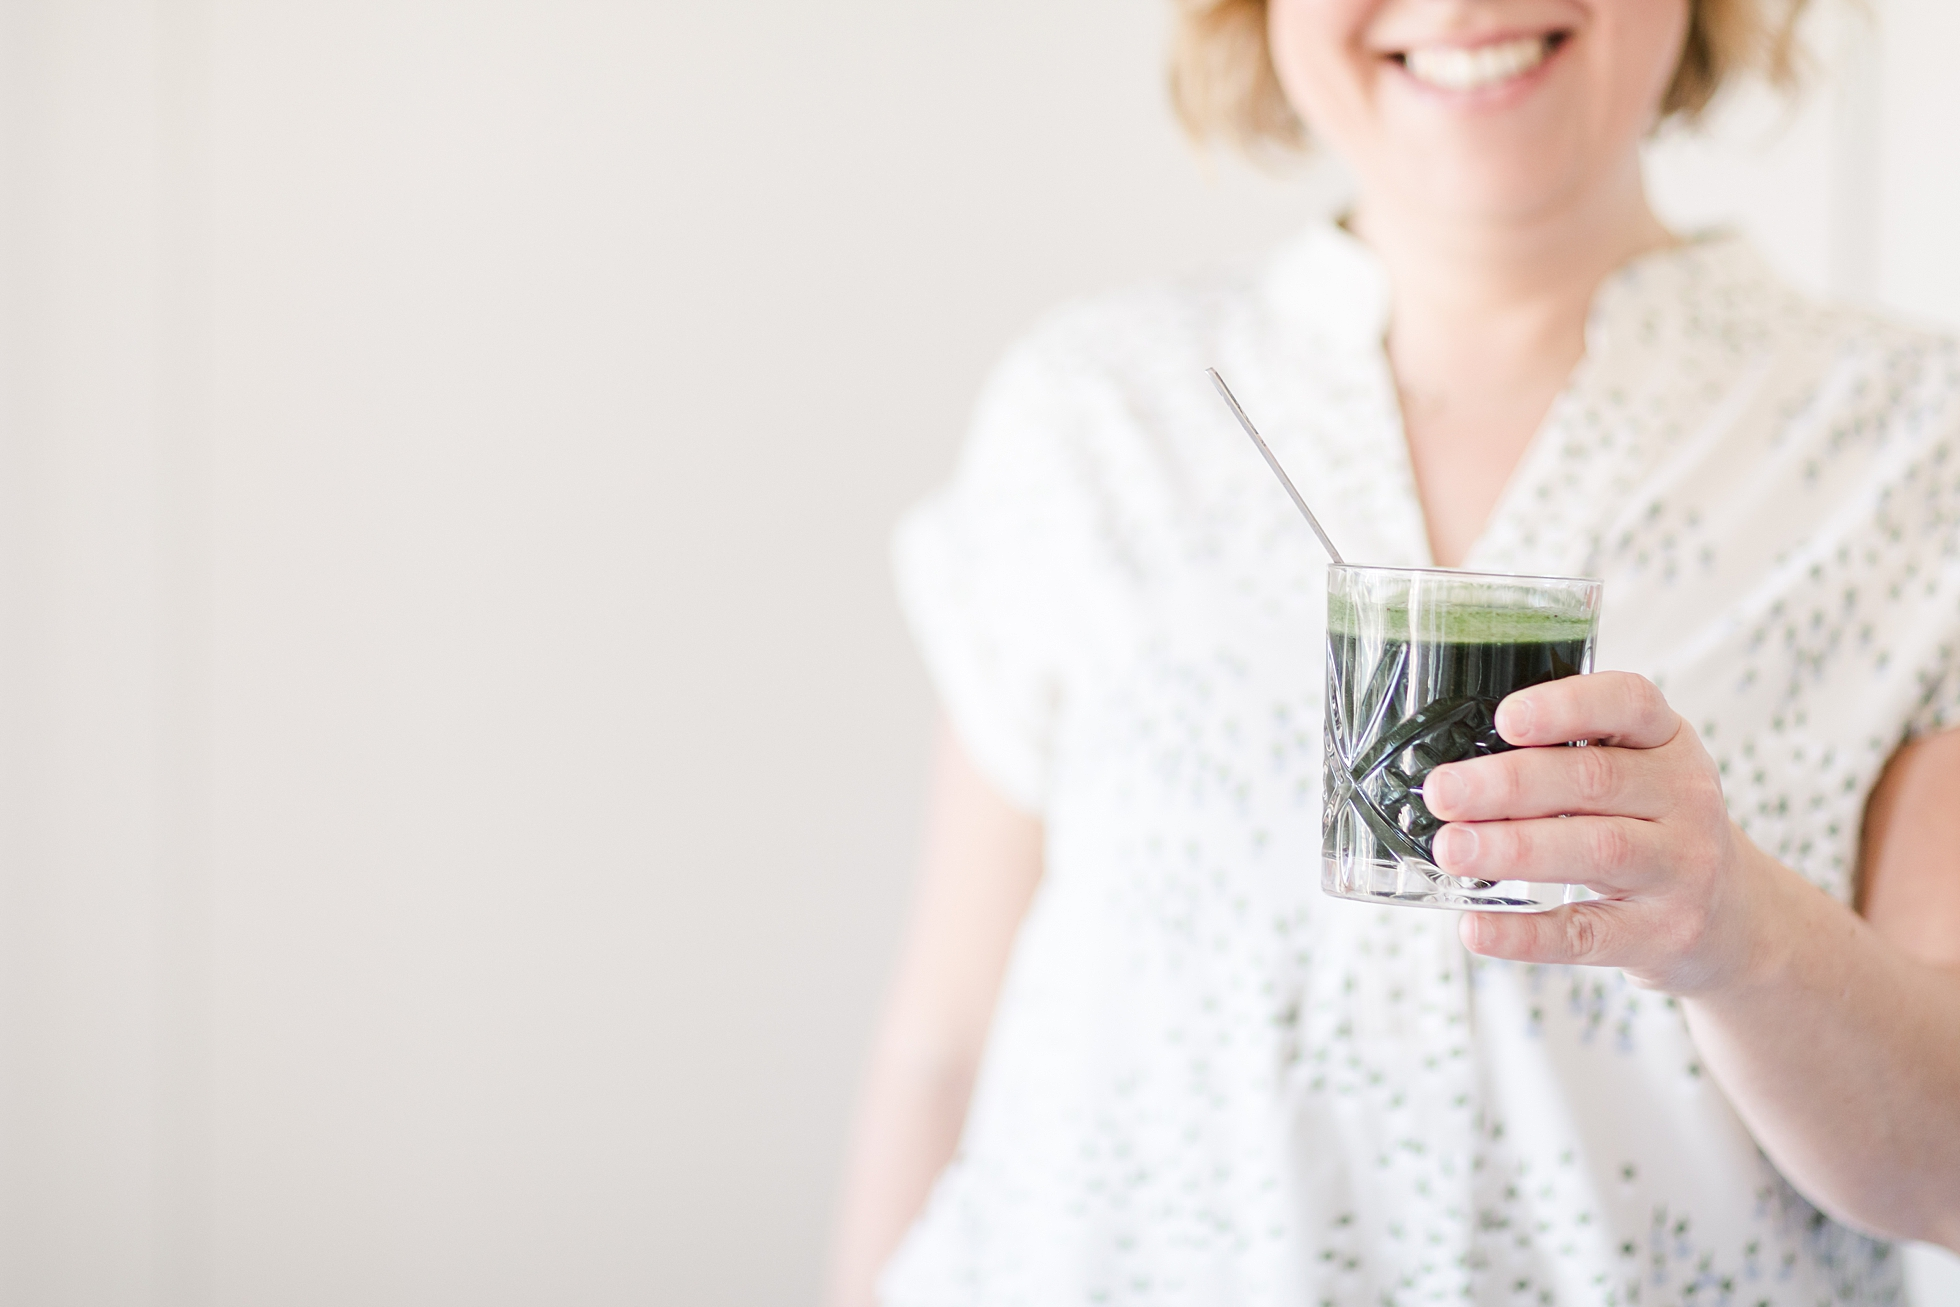 A smiling woman holding a green drink